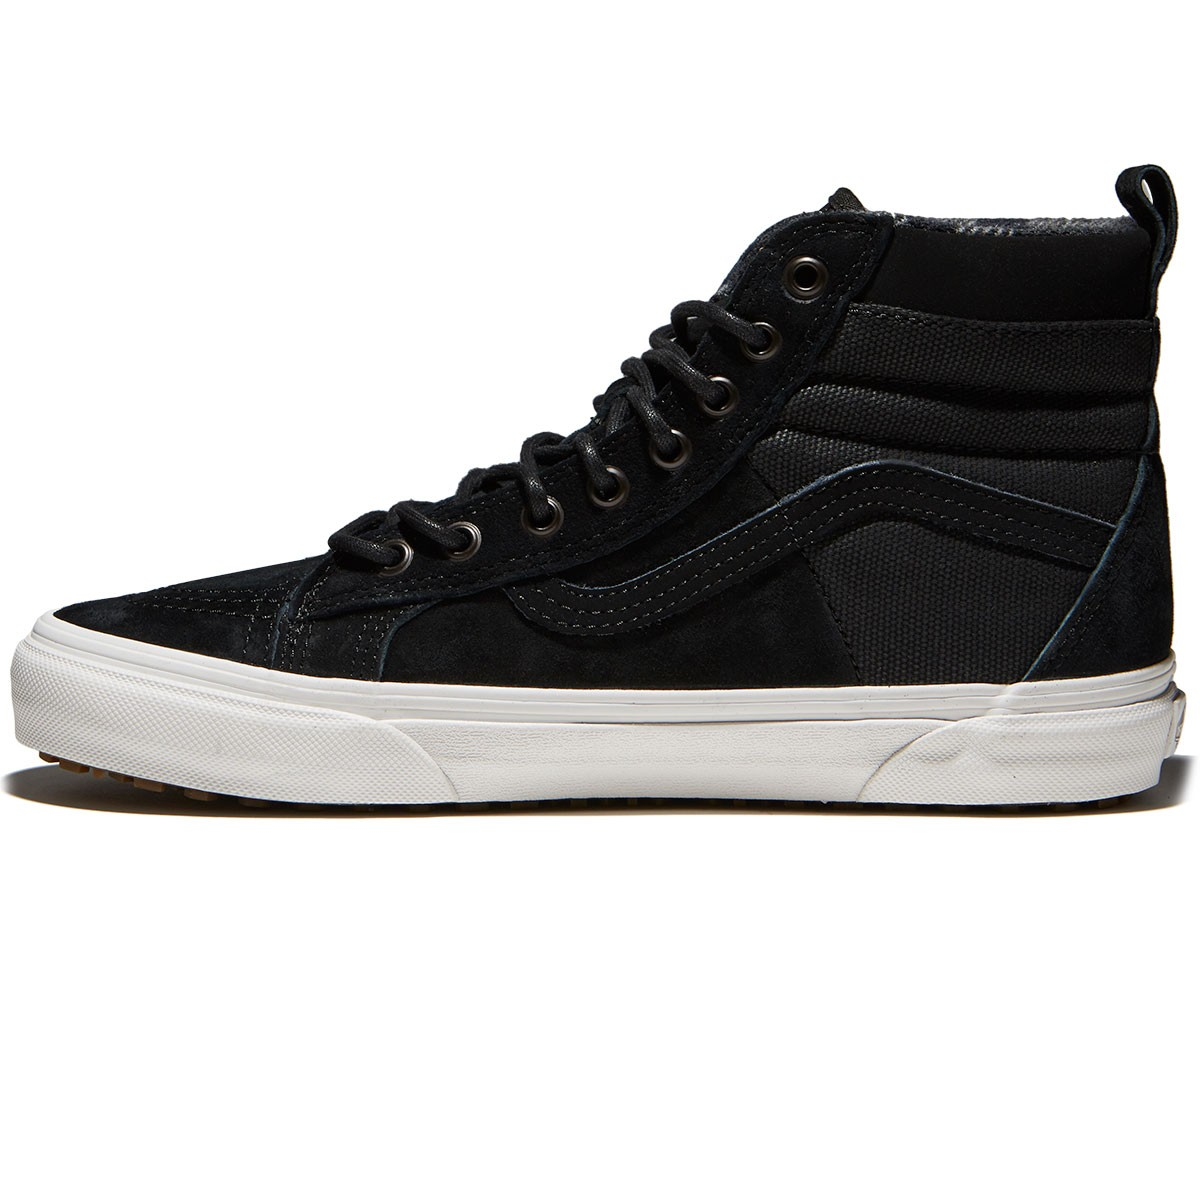 c9019baf49 Vans SK8-Hi 46 MTE DX Shoes - Black Flannel - 10.0